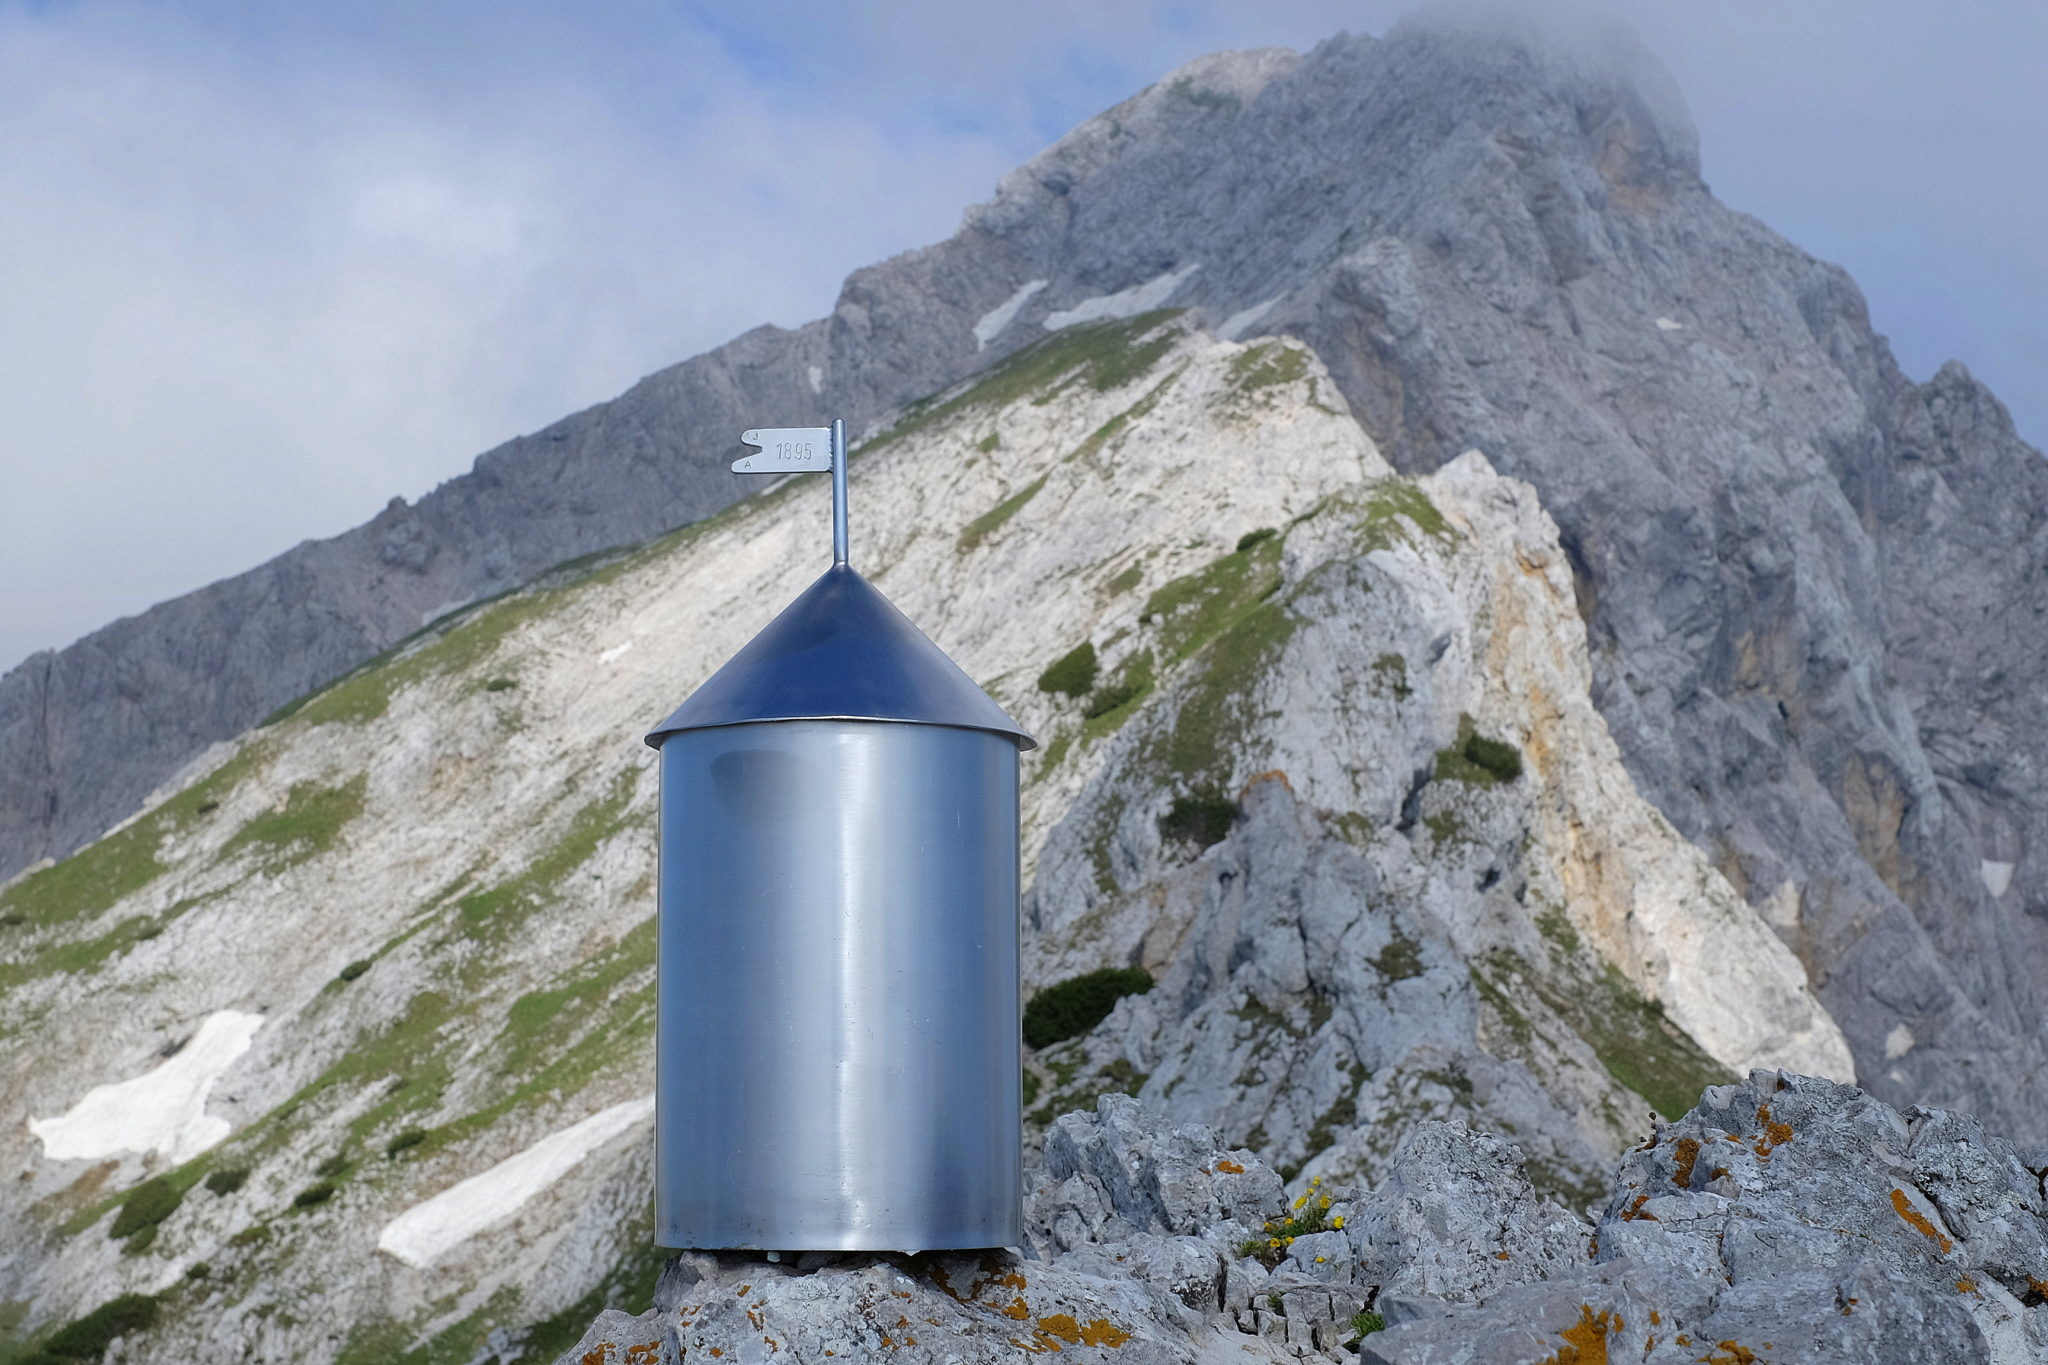 While one of the few miniature Aljaž Towers in the Slovenian Alps decorates the top of Mala Ojstrica underneath Ojstrica, the real thing sits at the rooftop of Slovenia, Mt. Triglav.